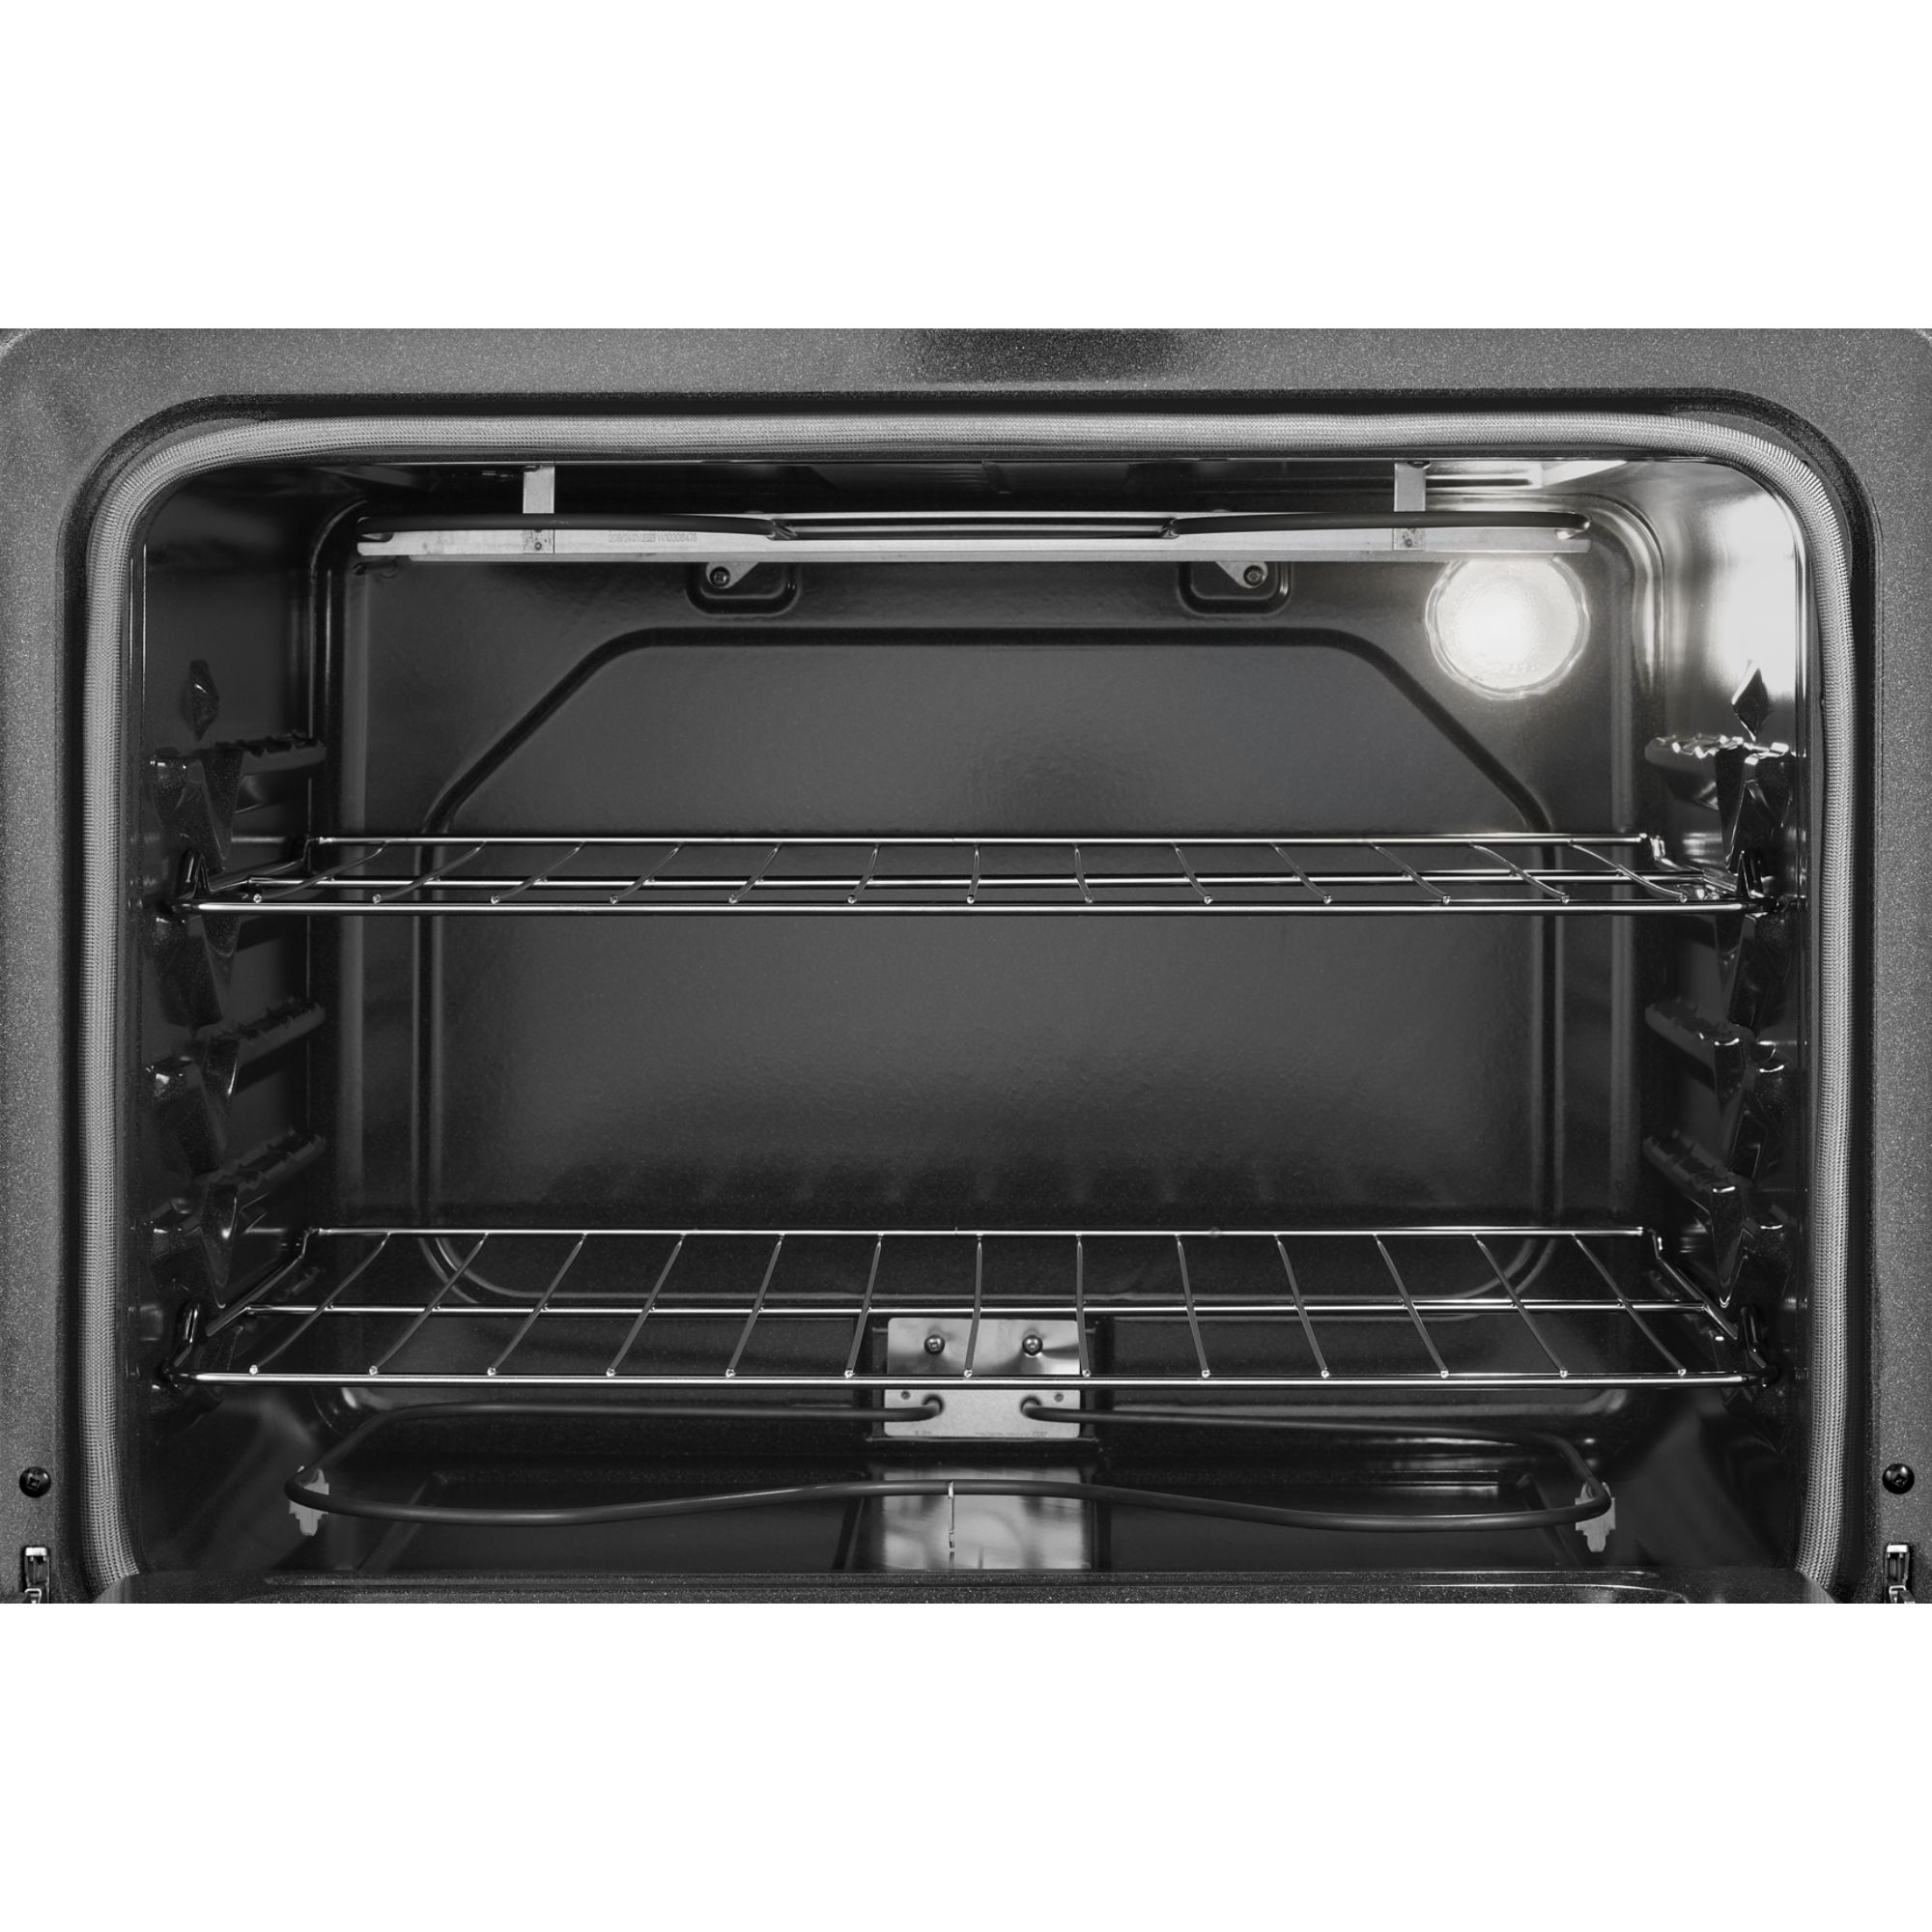 Whirlpool 4.8 cu. ft. Electric Range w/ Self-Cleaning Oven - White